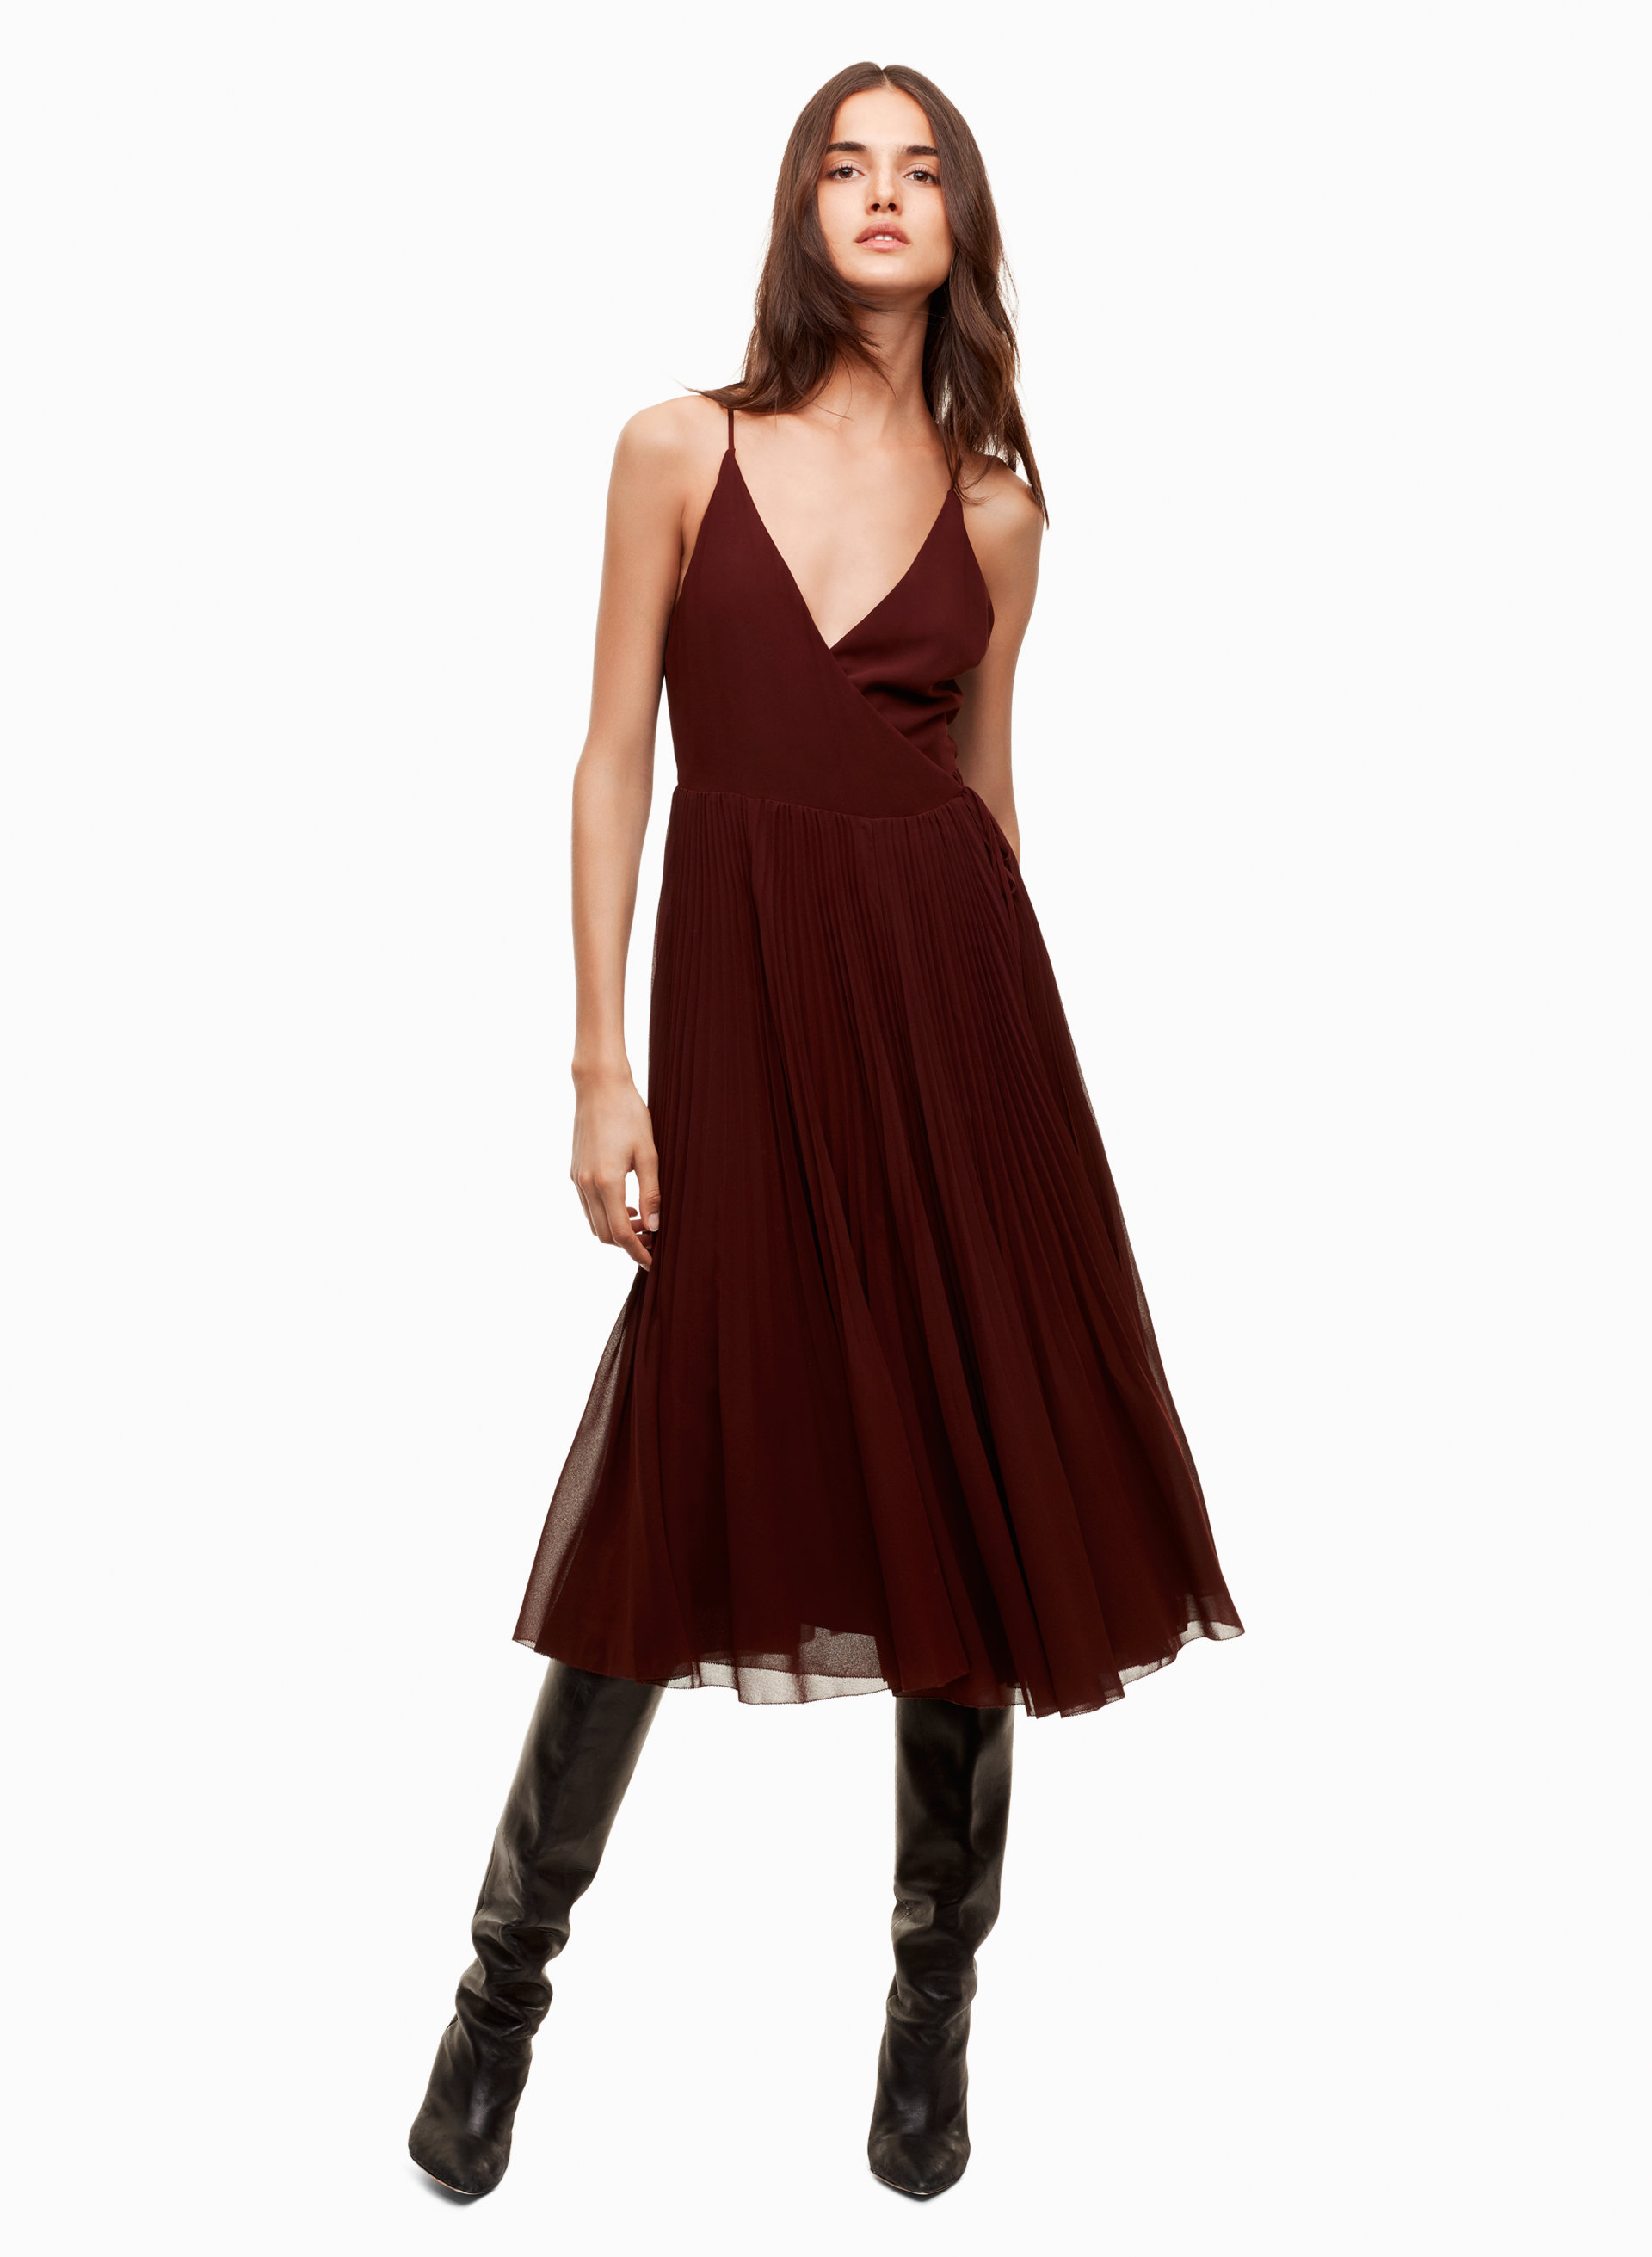 11aa63b7e757 Aritzia Wilfred Beaune Pleated Midi Dress - Meghan's Mirror